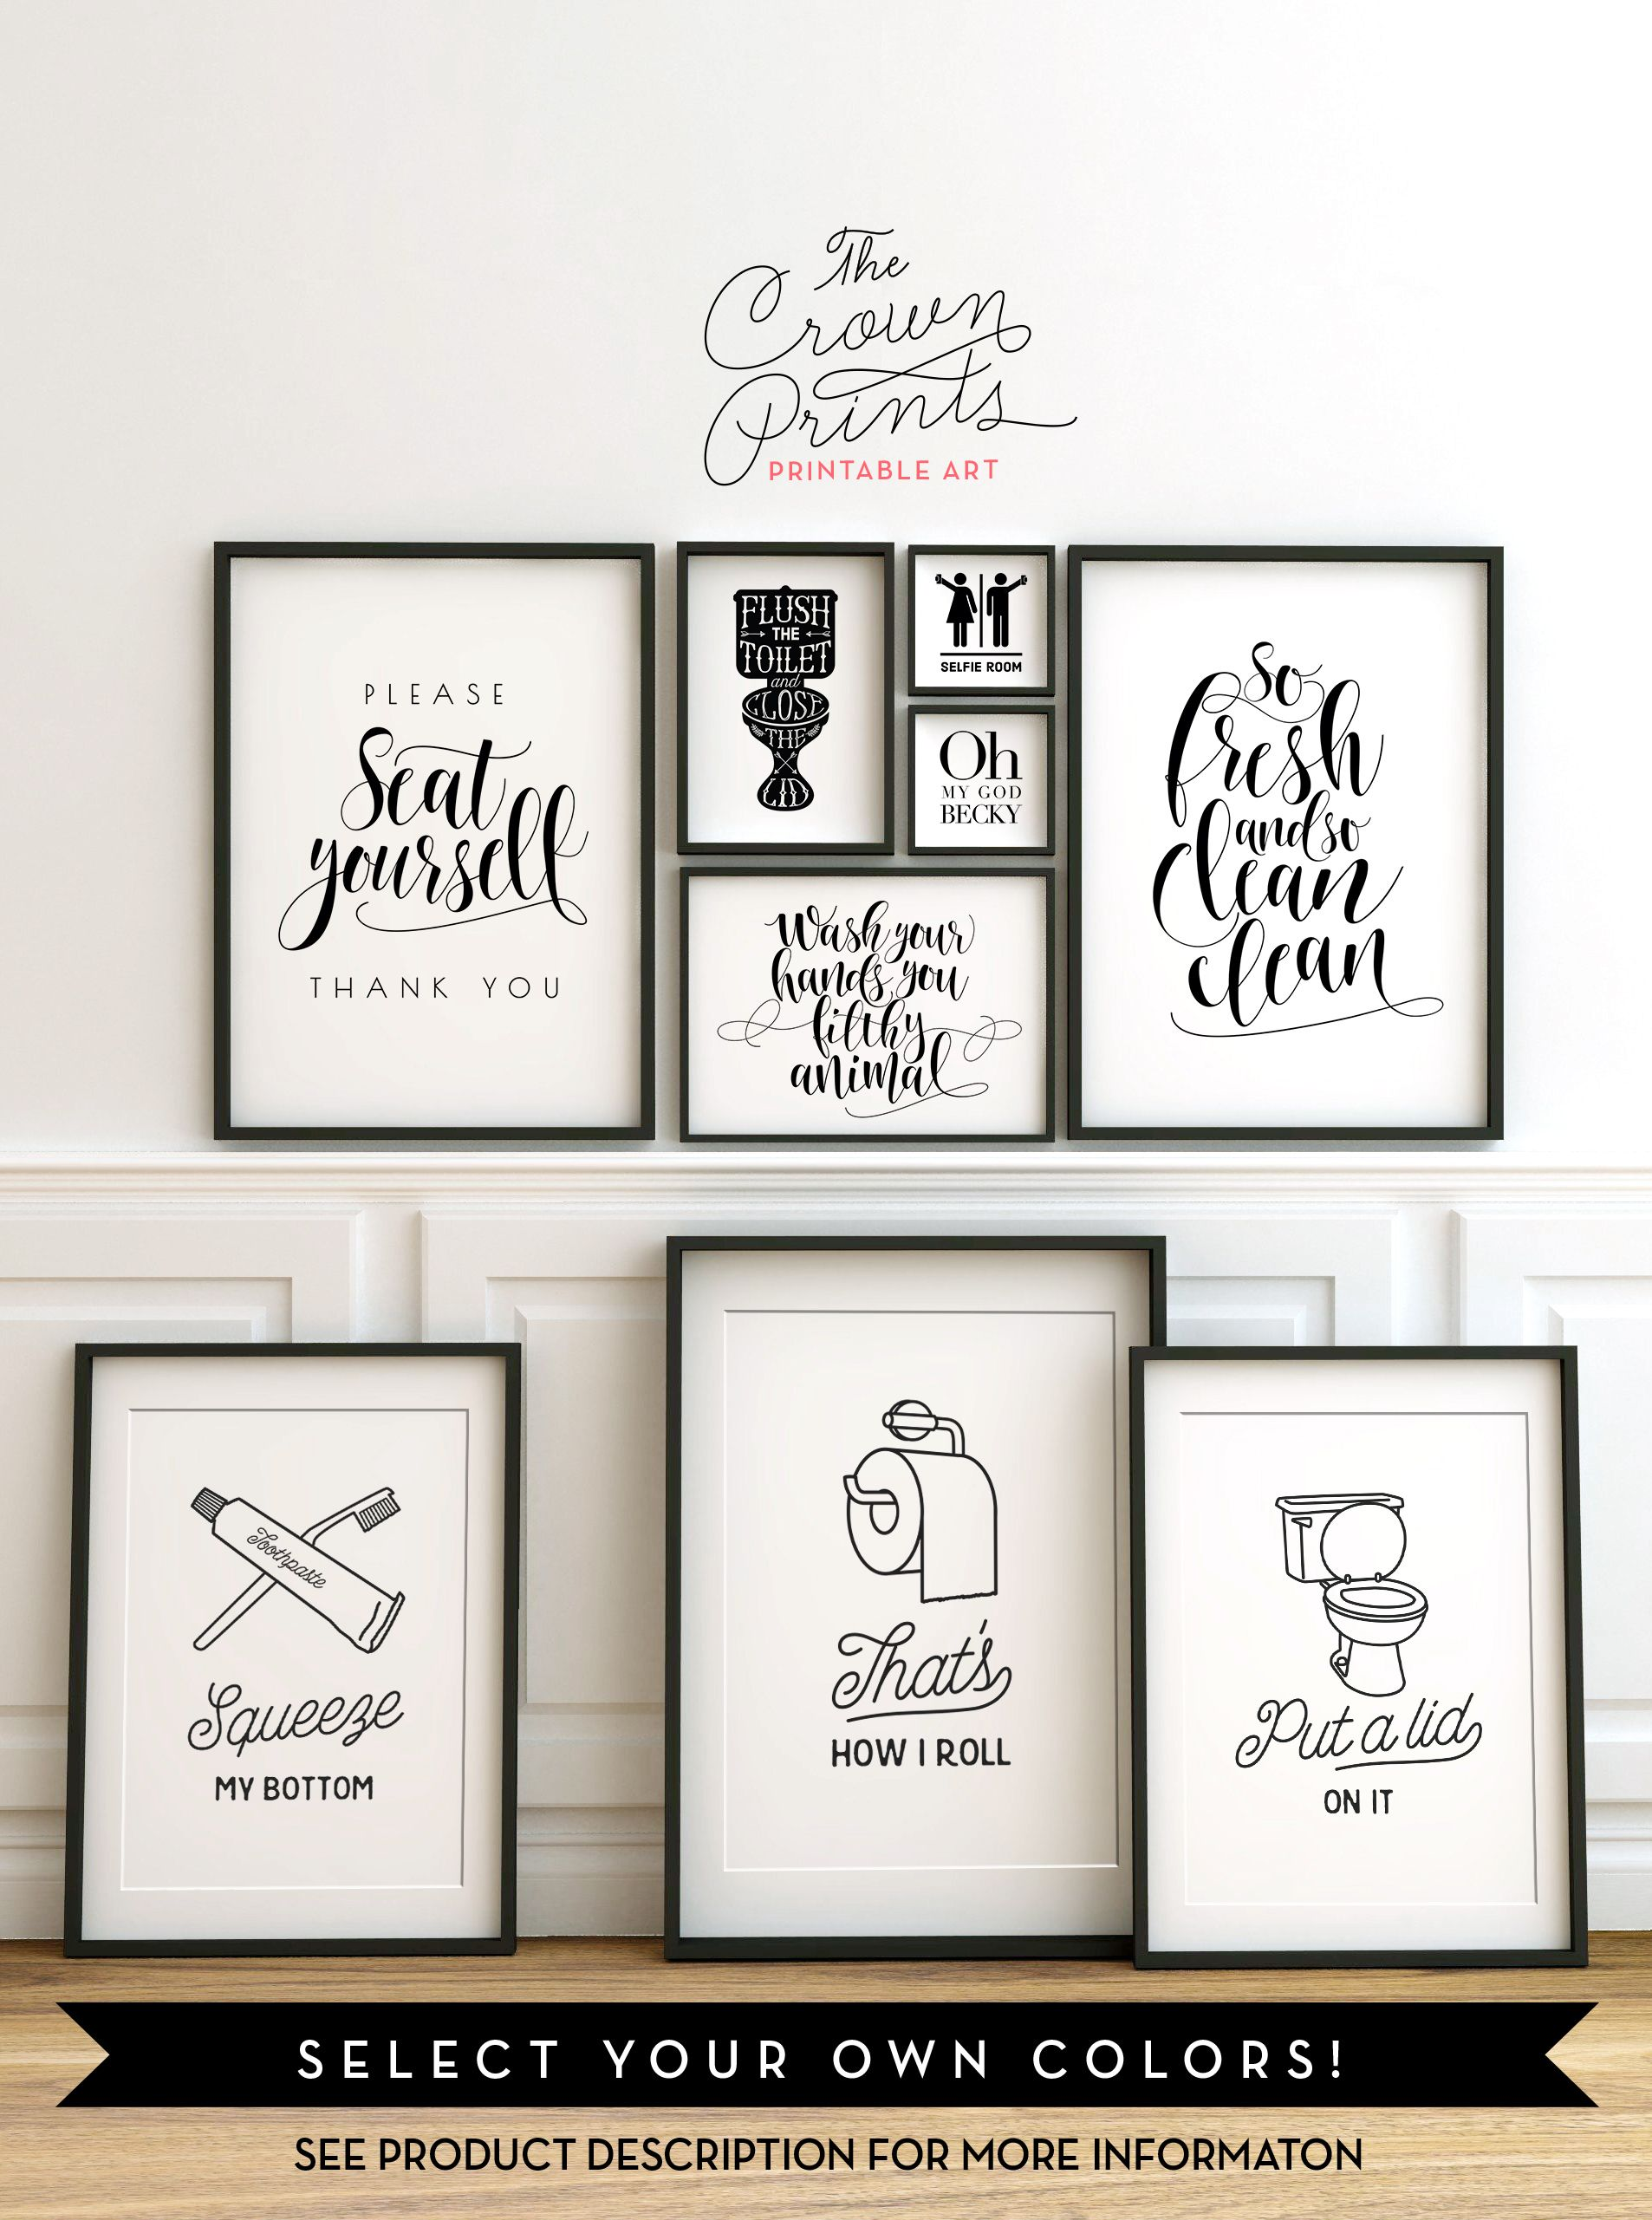 pin by sonya champion on printables in 2018 | pinterest | bathroom